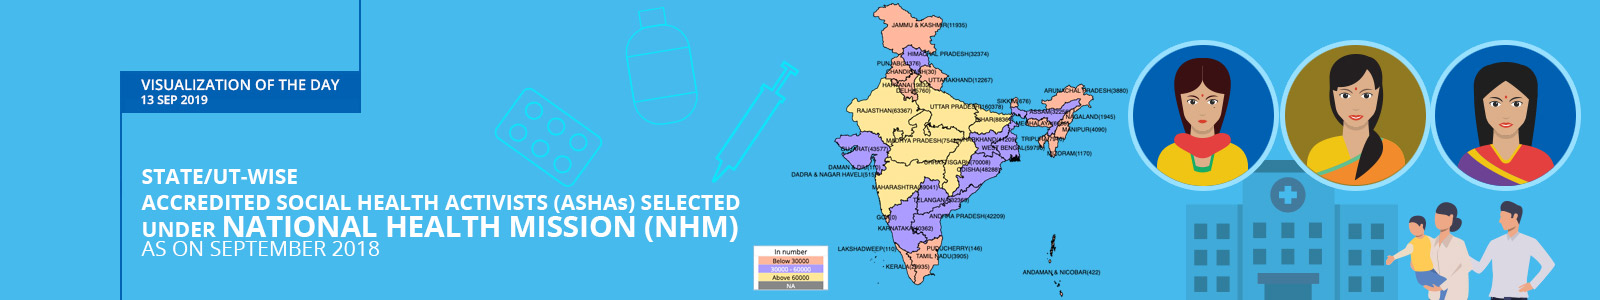 Visualization of the Day - 13th September 2019 : State/UT-wise ASHAs Selected under National Health Mission (NHM) as on September 2018